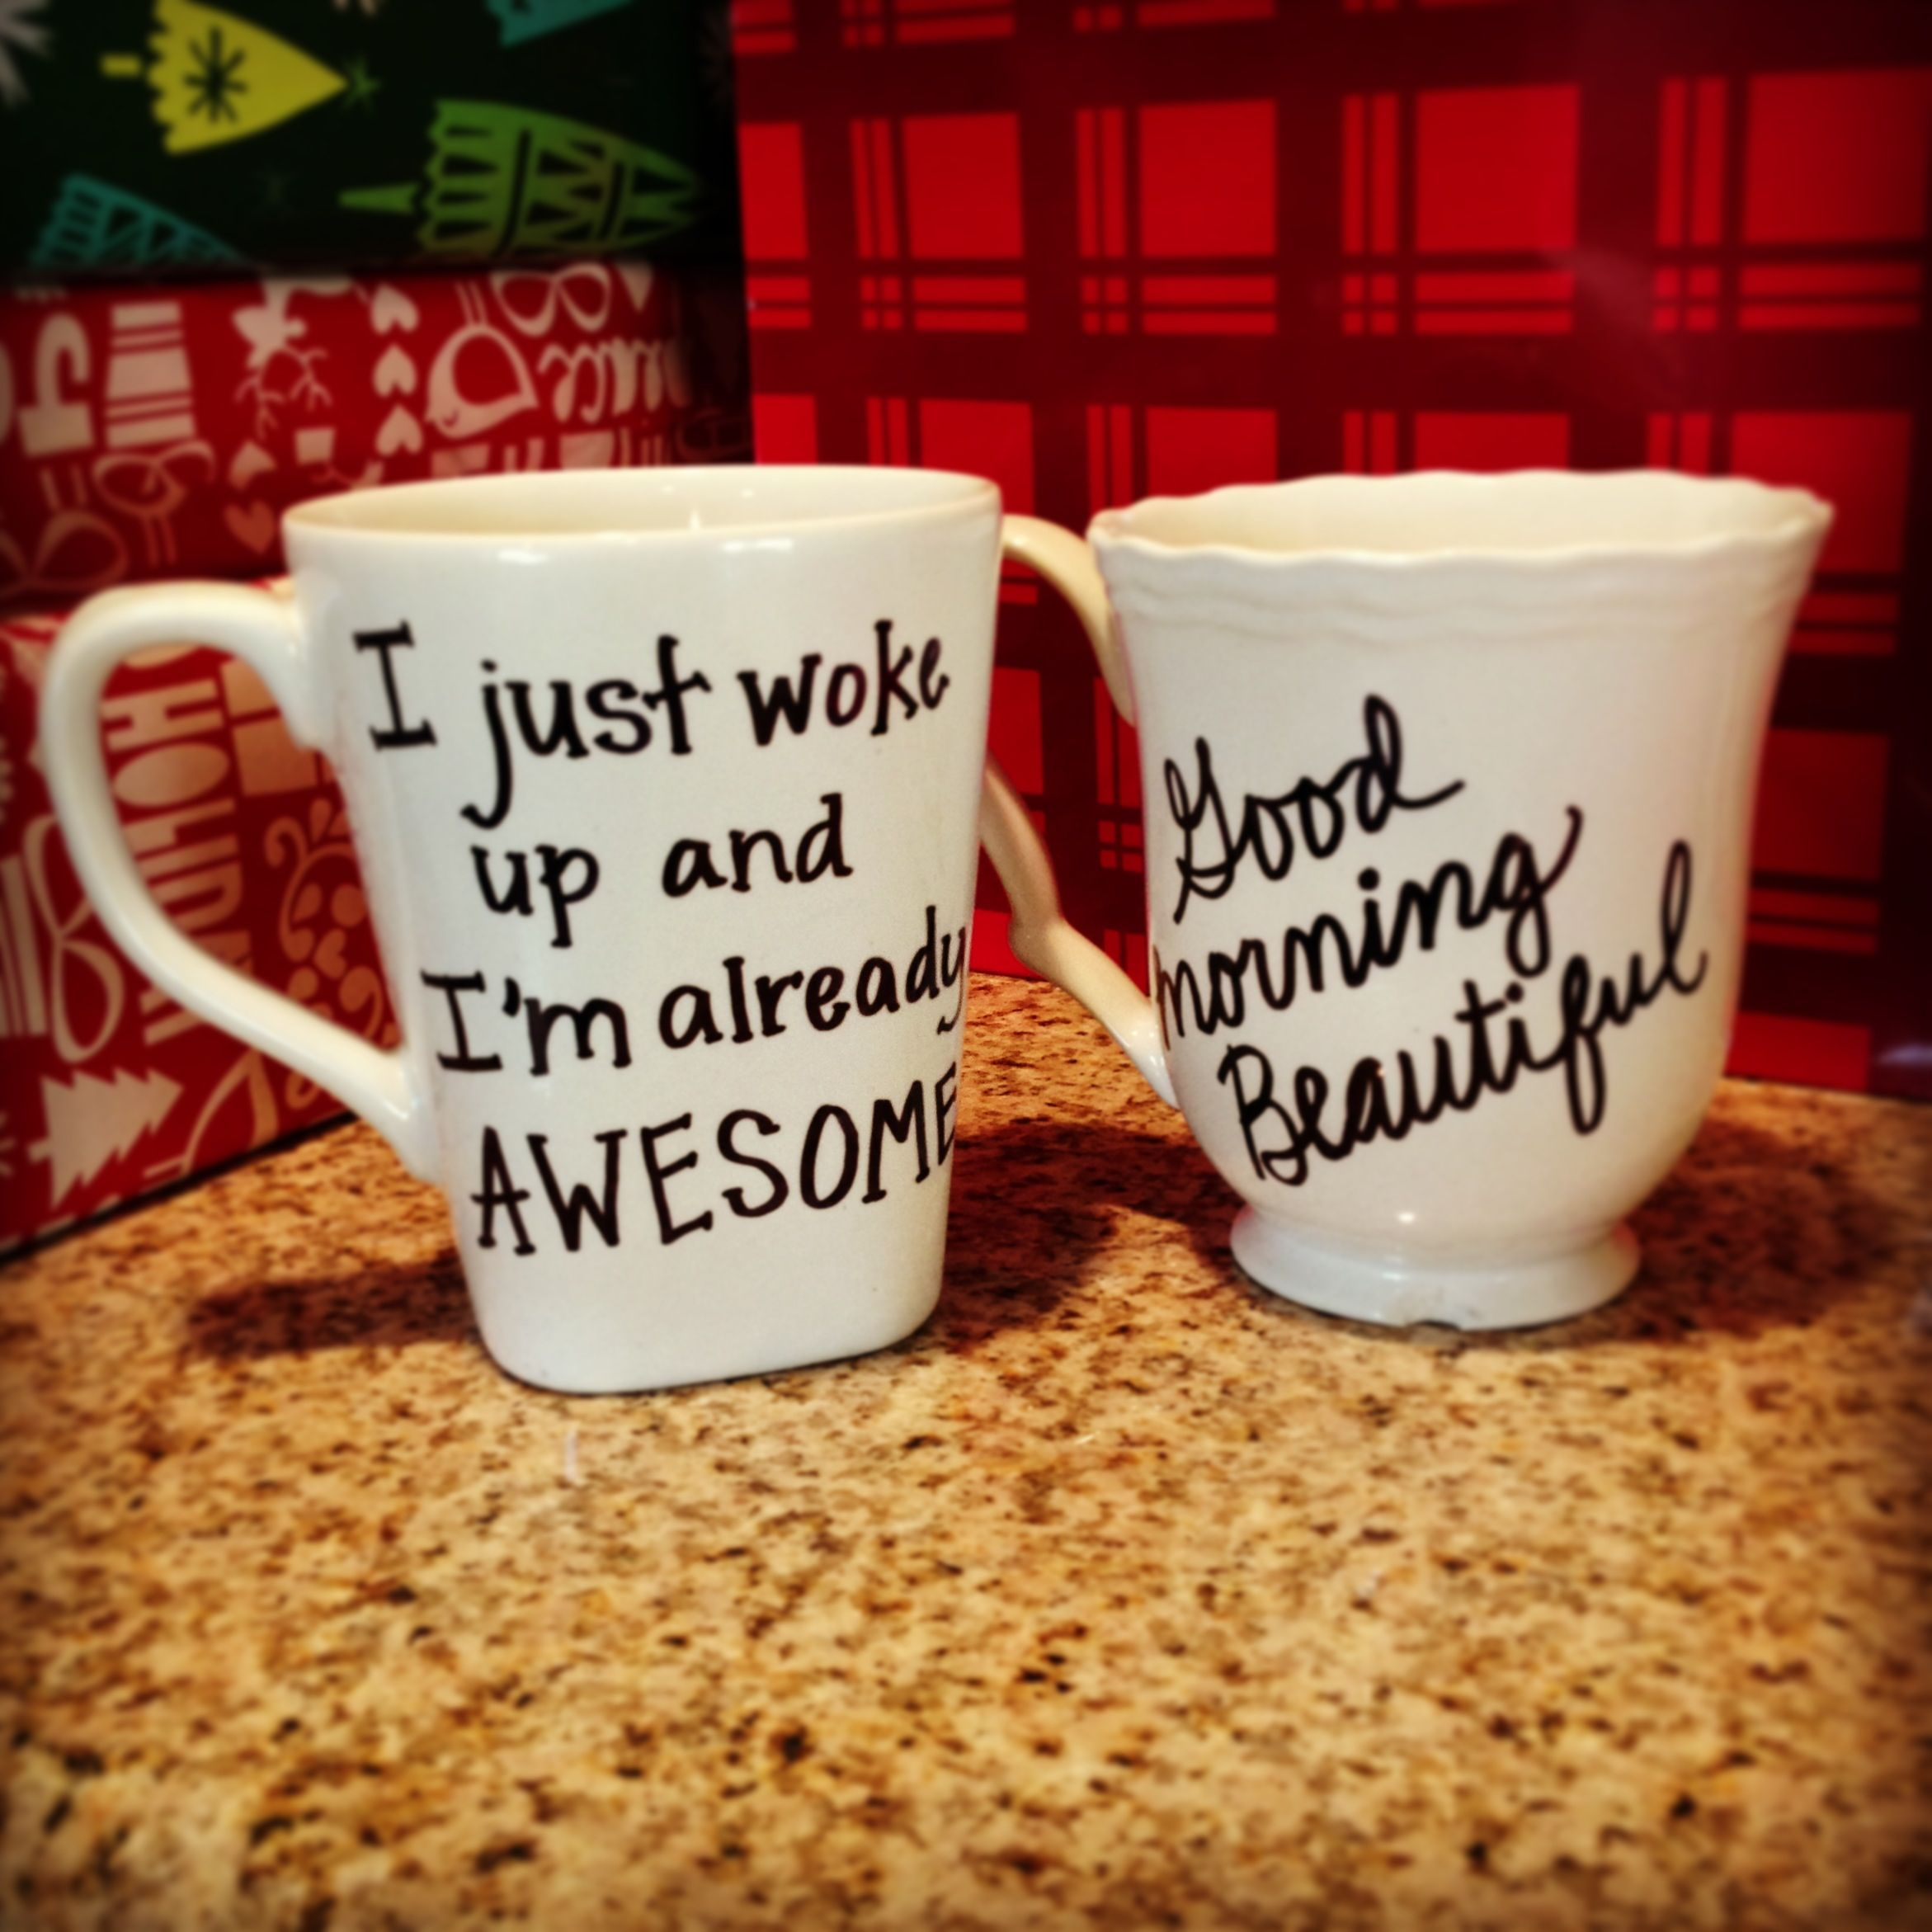 Diy Personalized Mugs For Christmas Gifts Write Your Favorite Message On A Mug With Sharpie Then Bake At 350 20 Minutes